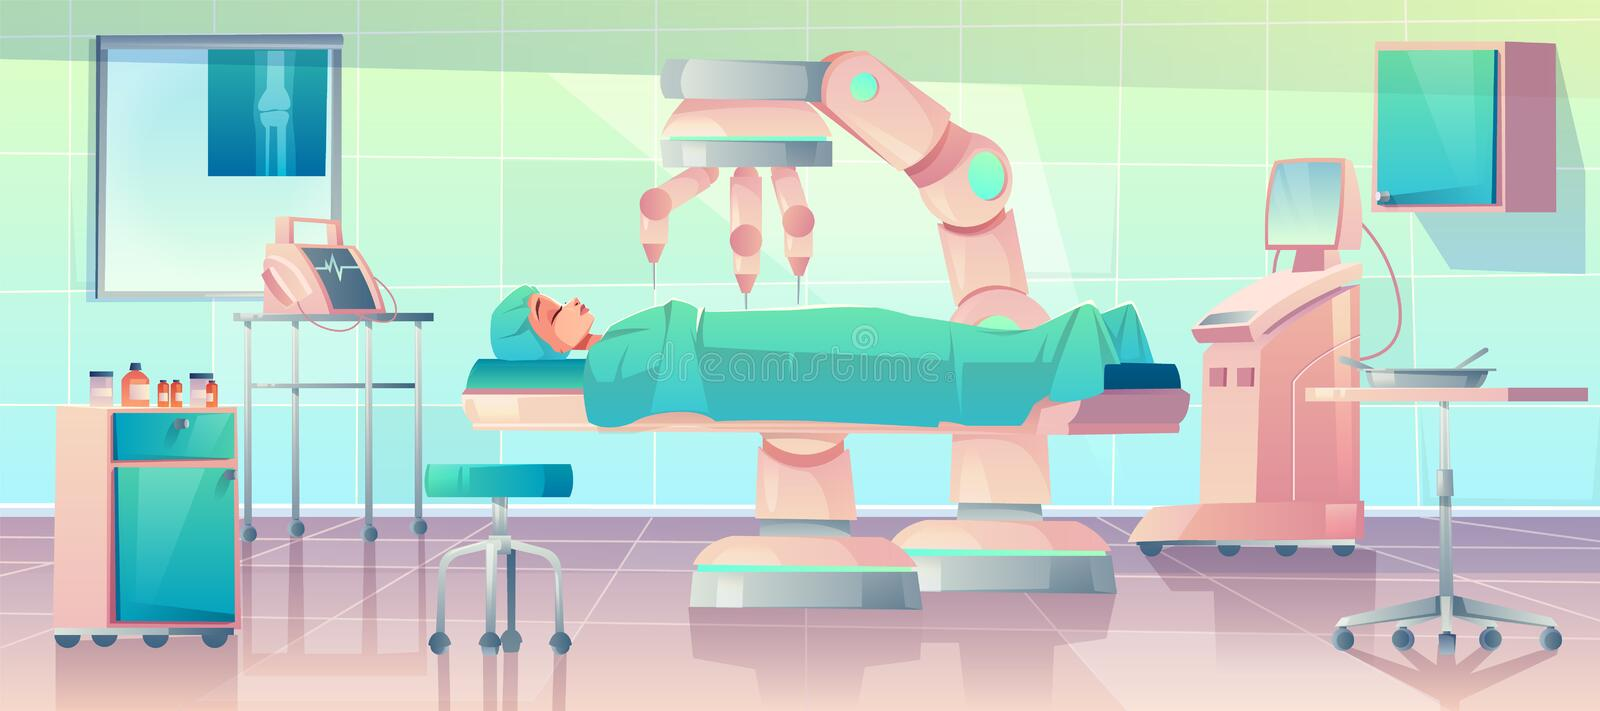 Robots in medicine, surgery, operation, royalty free illustration